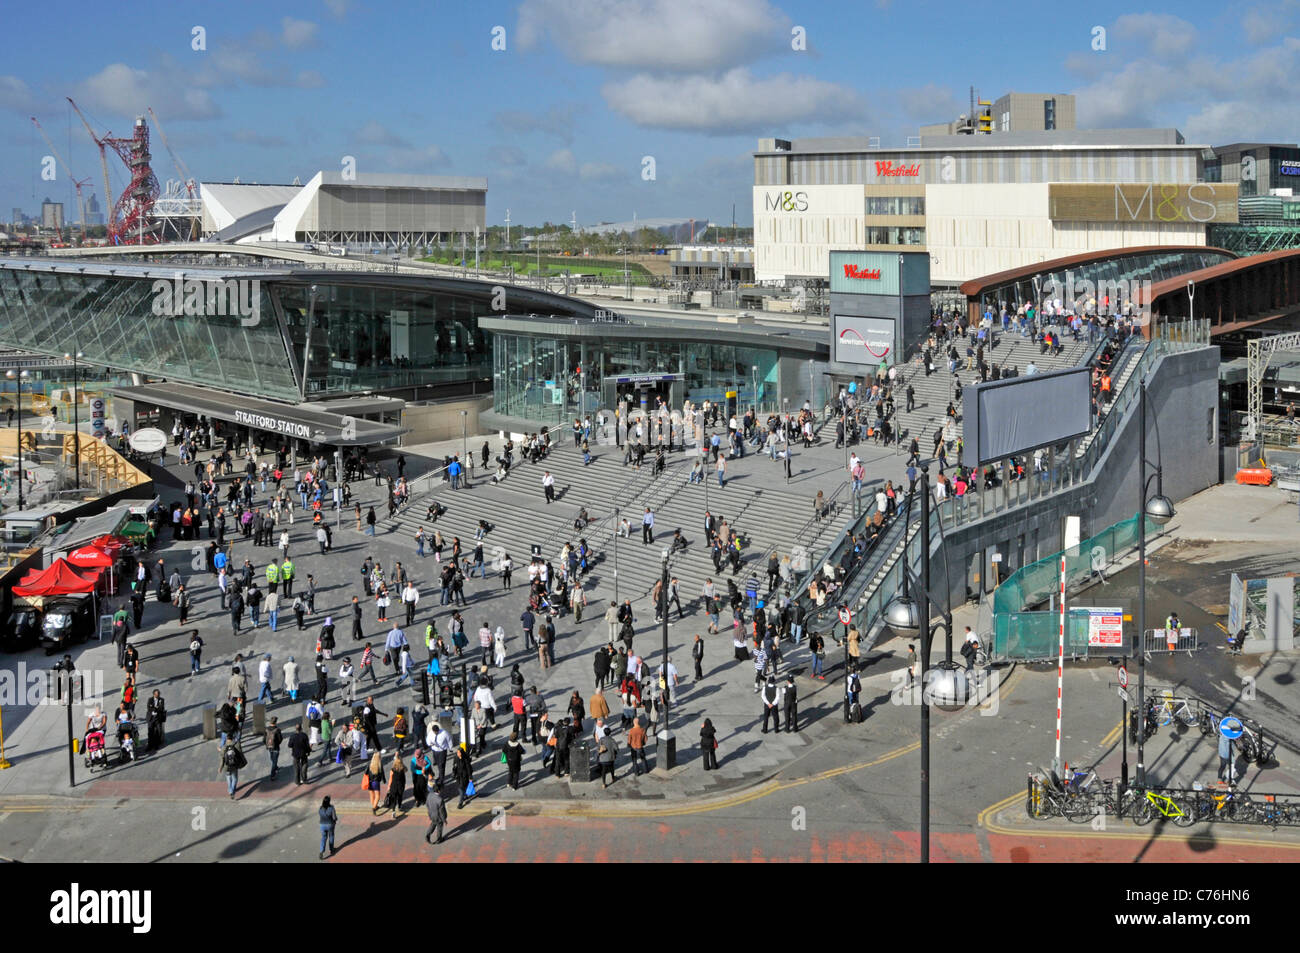 View from above people in busy street scene Stratford train station & Westfield Shopping Centre with London - Stock Image